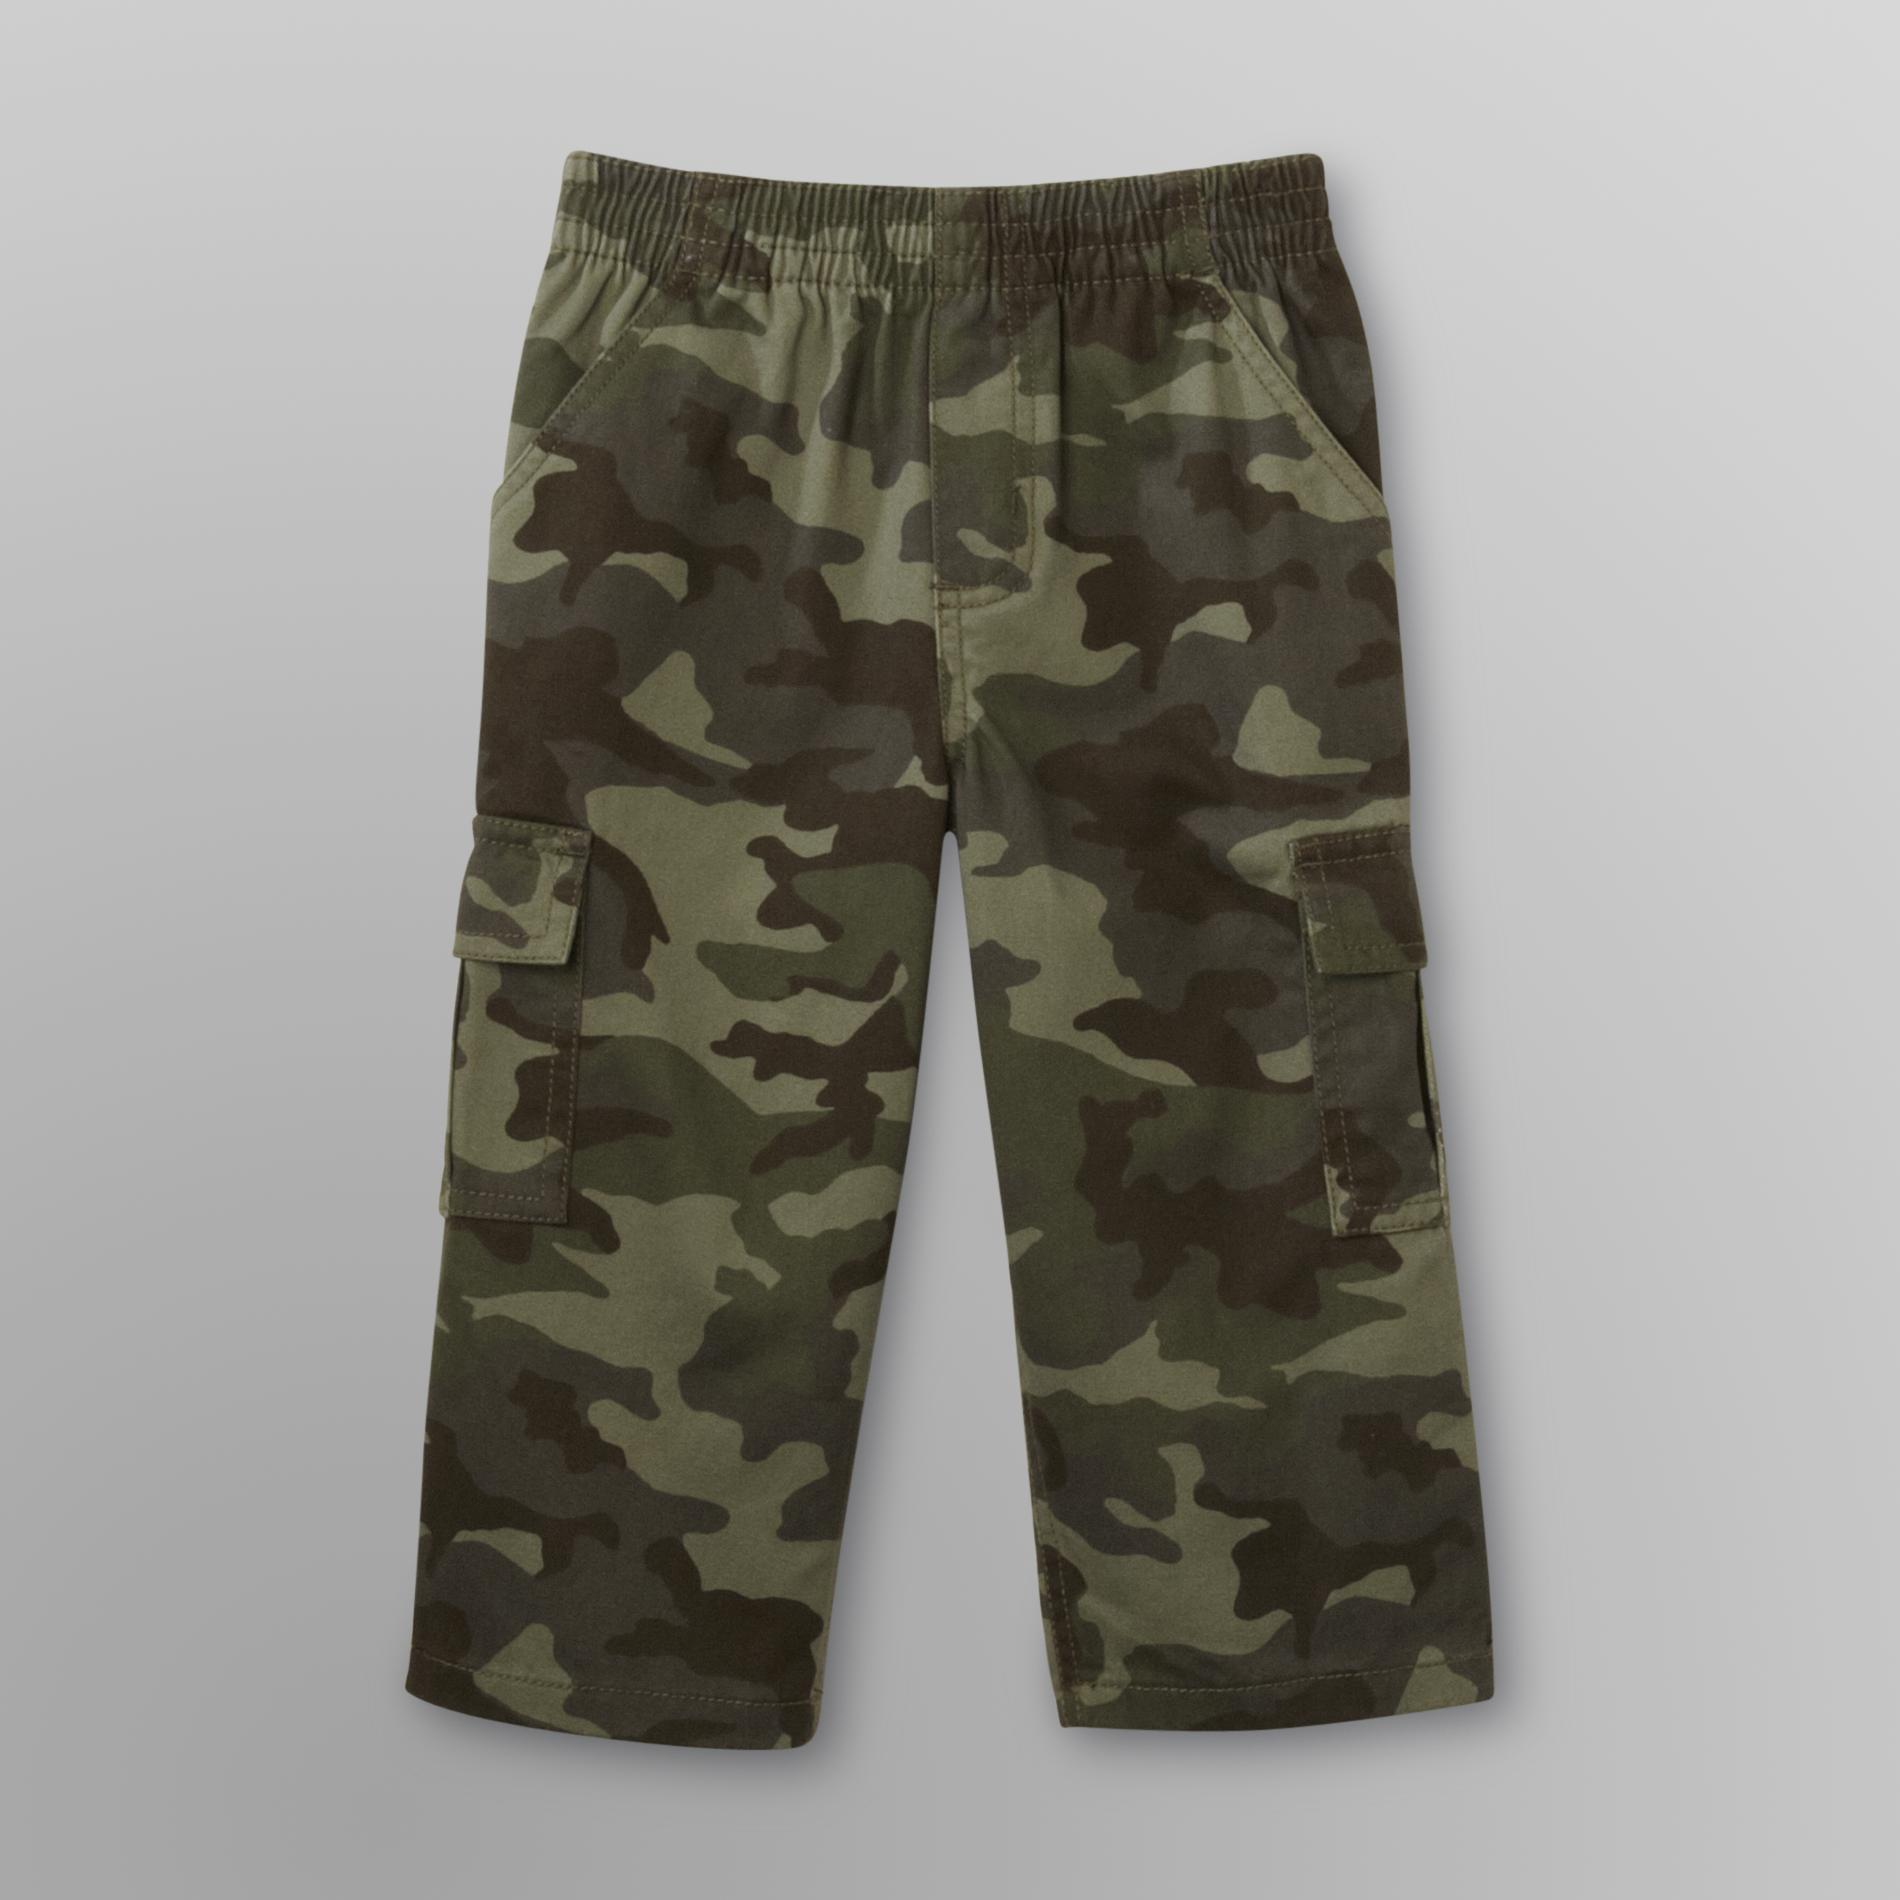 Infant & Toddler Boy's Twill Pants - Camouflage